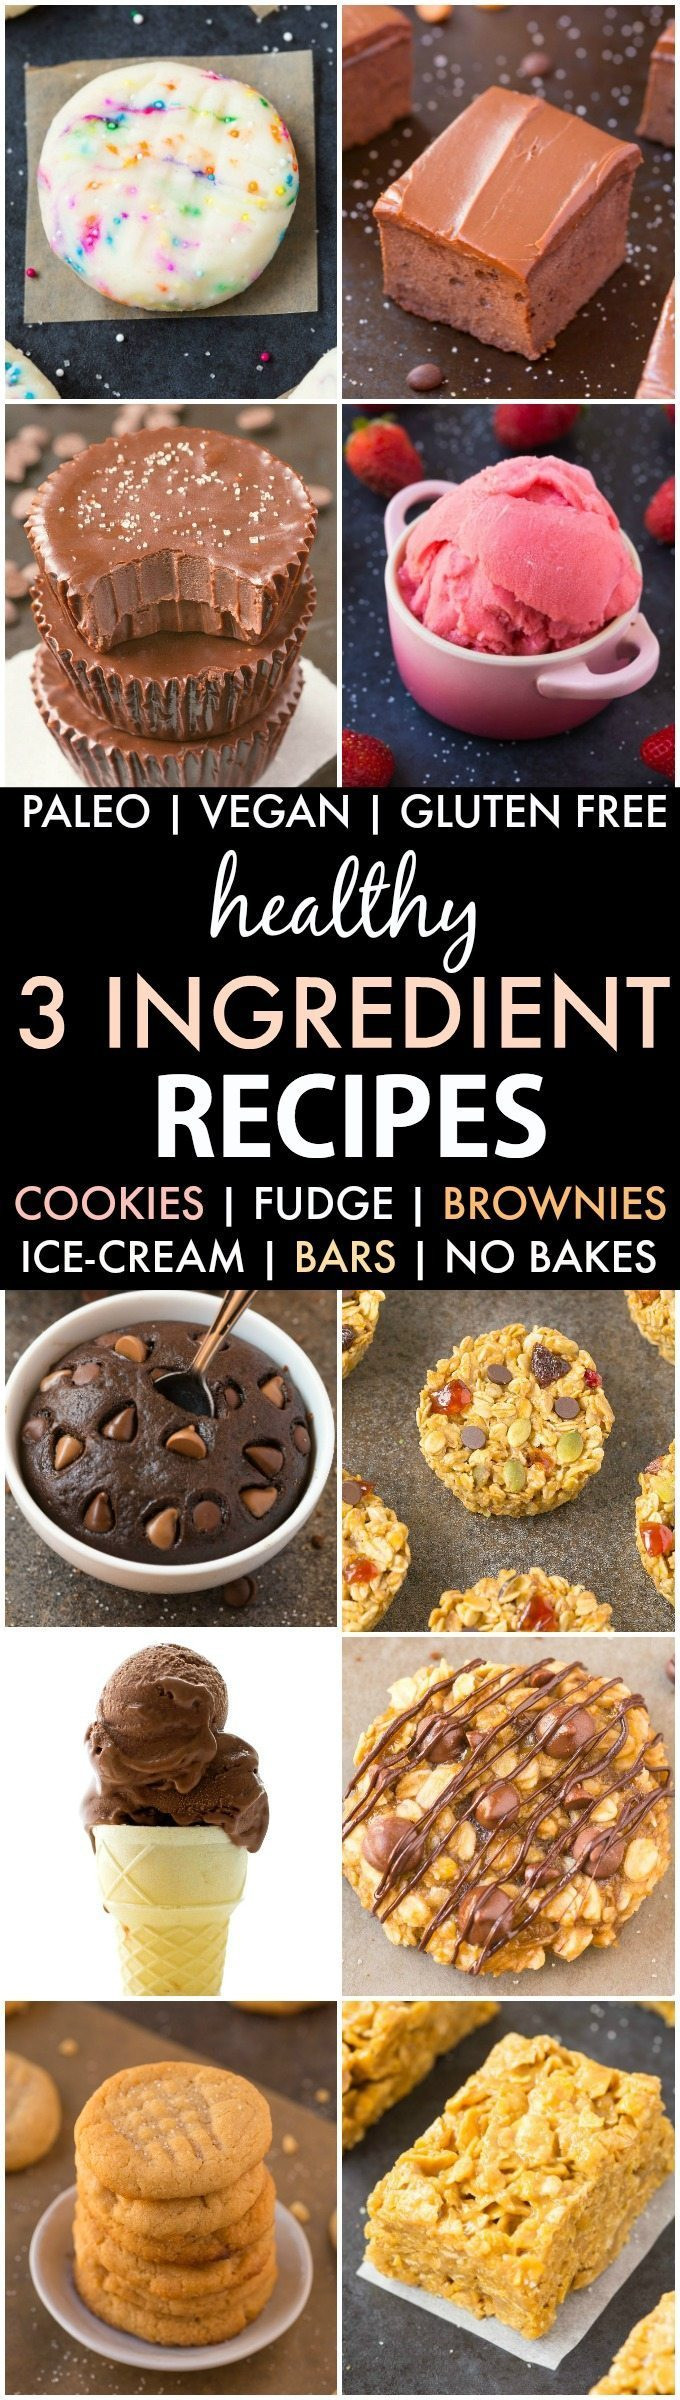 Gluten Free Dessert Recipes With Normal Ingredients  Healthy 3 Ingre nt Snack and Dessert Recipes